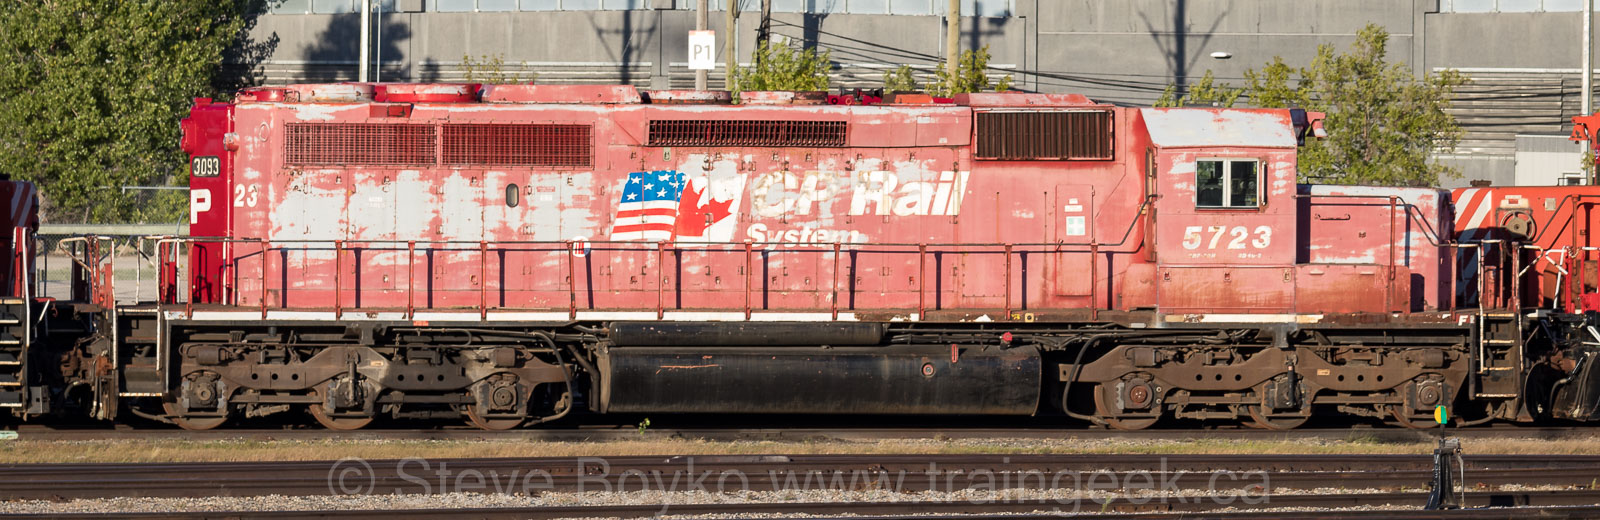 CP 5723 in Winnipeg, Sept 3 2020